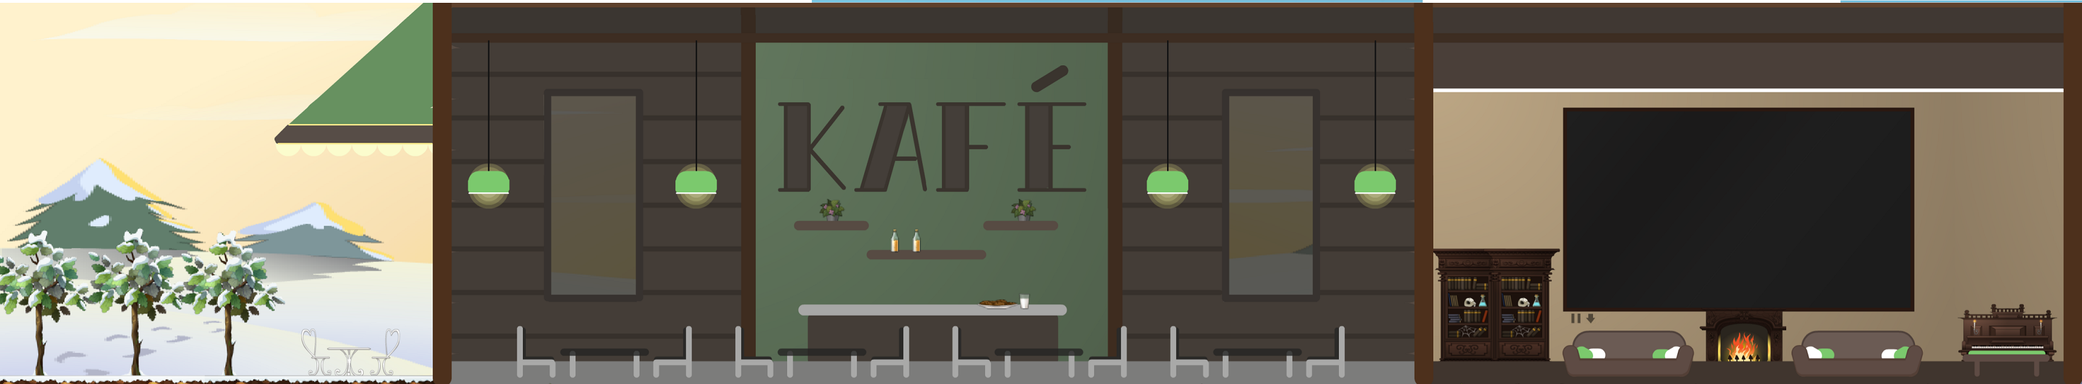 http://pre10.deviantart.net/3940/th/pre/f/2016/362/a/8/tfm_map__the_kafe_by_xsilverraven-dat7uk3.png